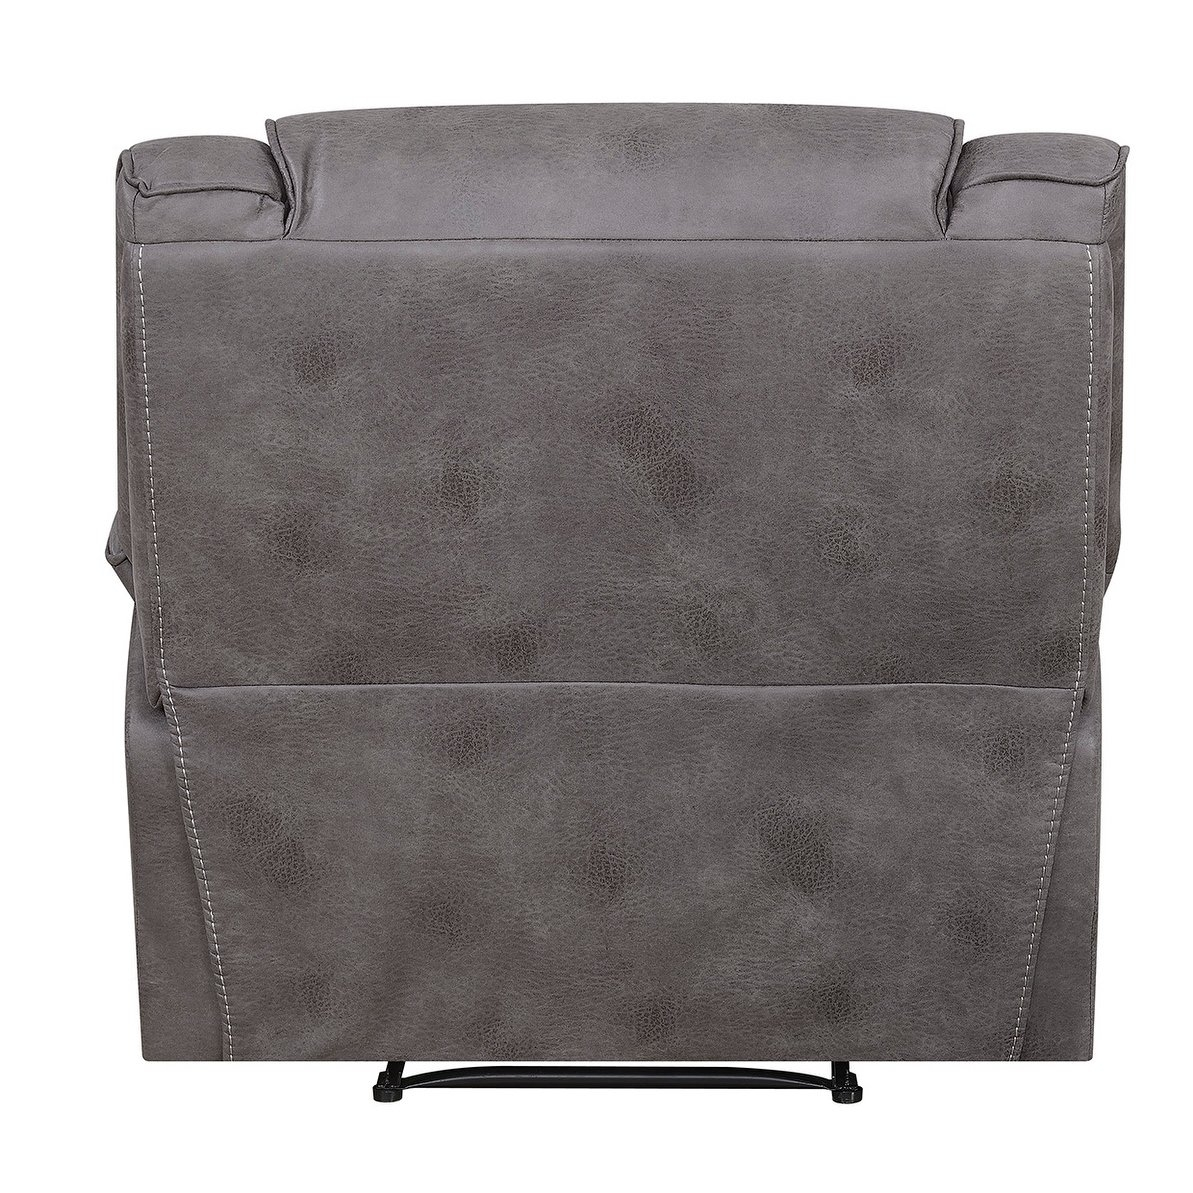 Shop Dylan Power Recliner With Memory Foam Seat Topper And Usb throughout Travis Dk Grey Leather 6 Piece Power Reclining Sectionals With Power Headrest & Usb (Image 22 of 30)